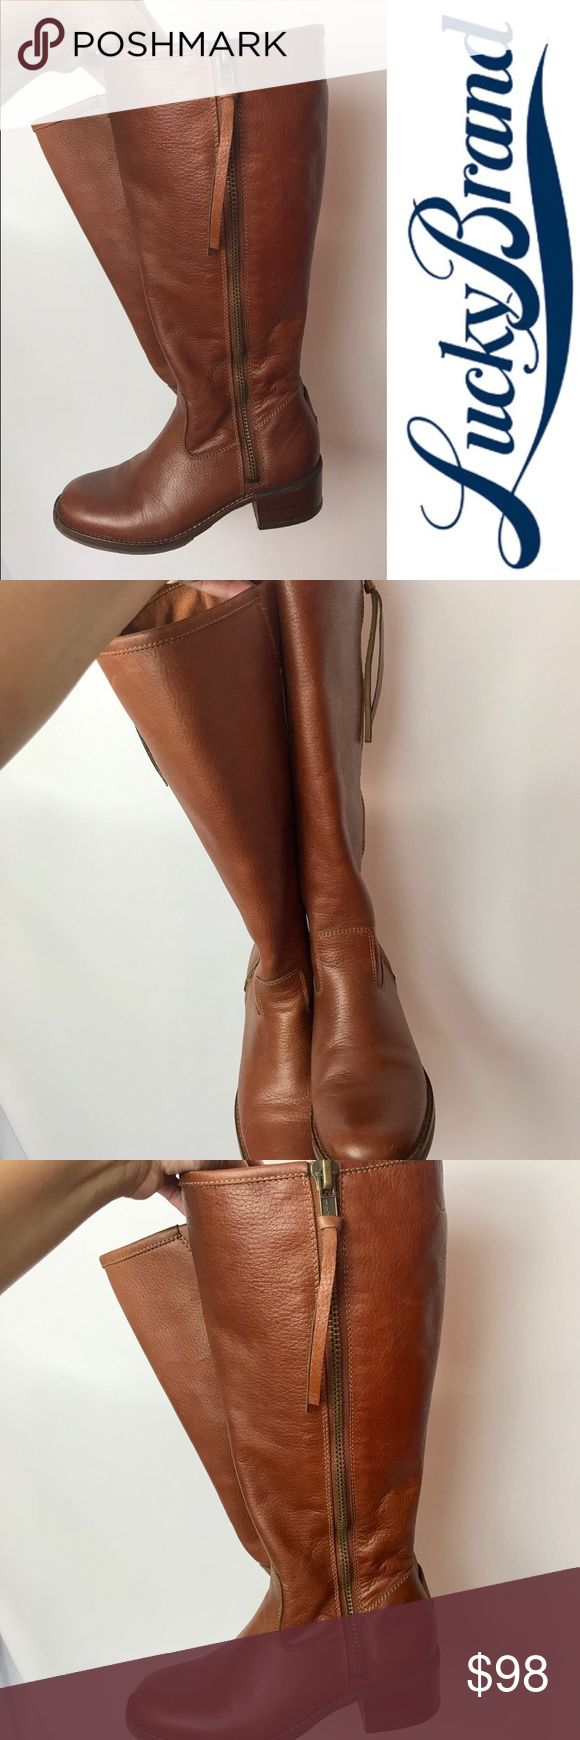 Lucky Hyperr Cognac Riding Boots Knee High Tassel Like New Only Worn Twice! Lucky Brand Leather Cognac/Luggage Color Riding Boots, Chunky Wooden Heel With Side Zipper and a Chic Tassel! Originally Purchased From Nordstrom. Lucky Brand Shoes Heeled Boots